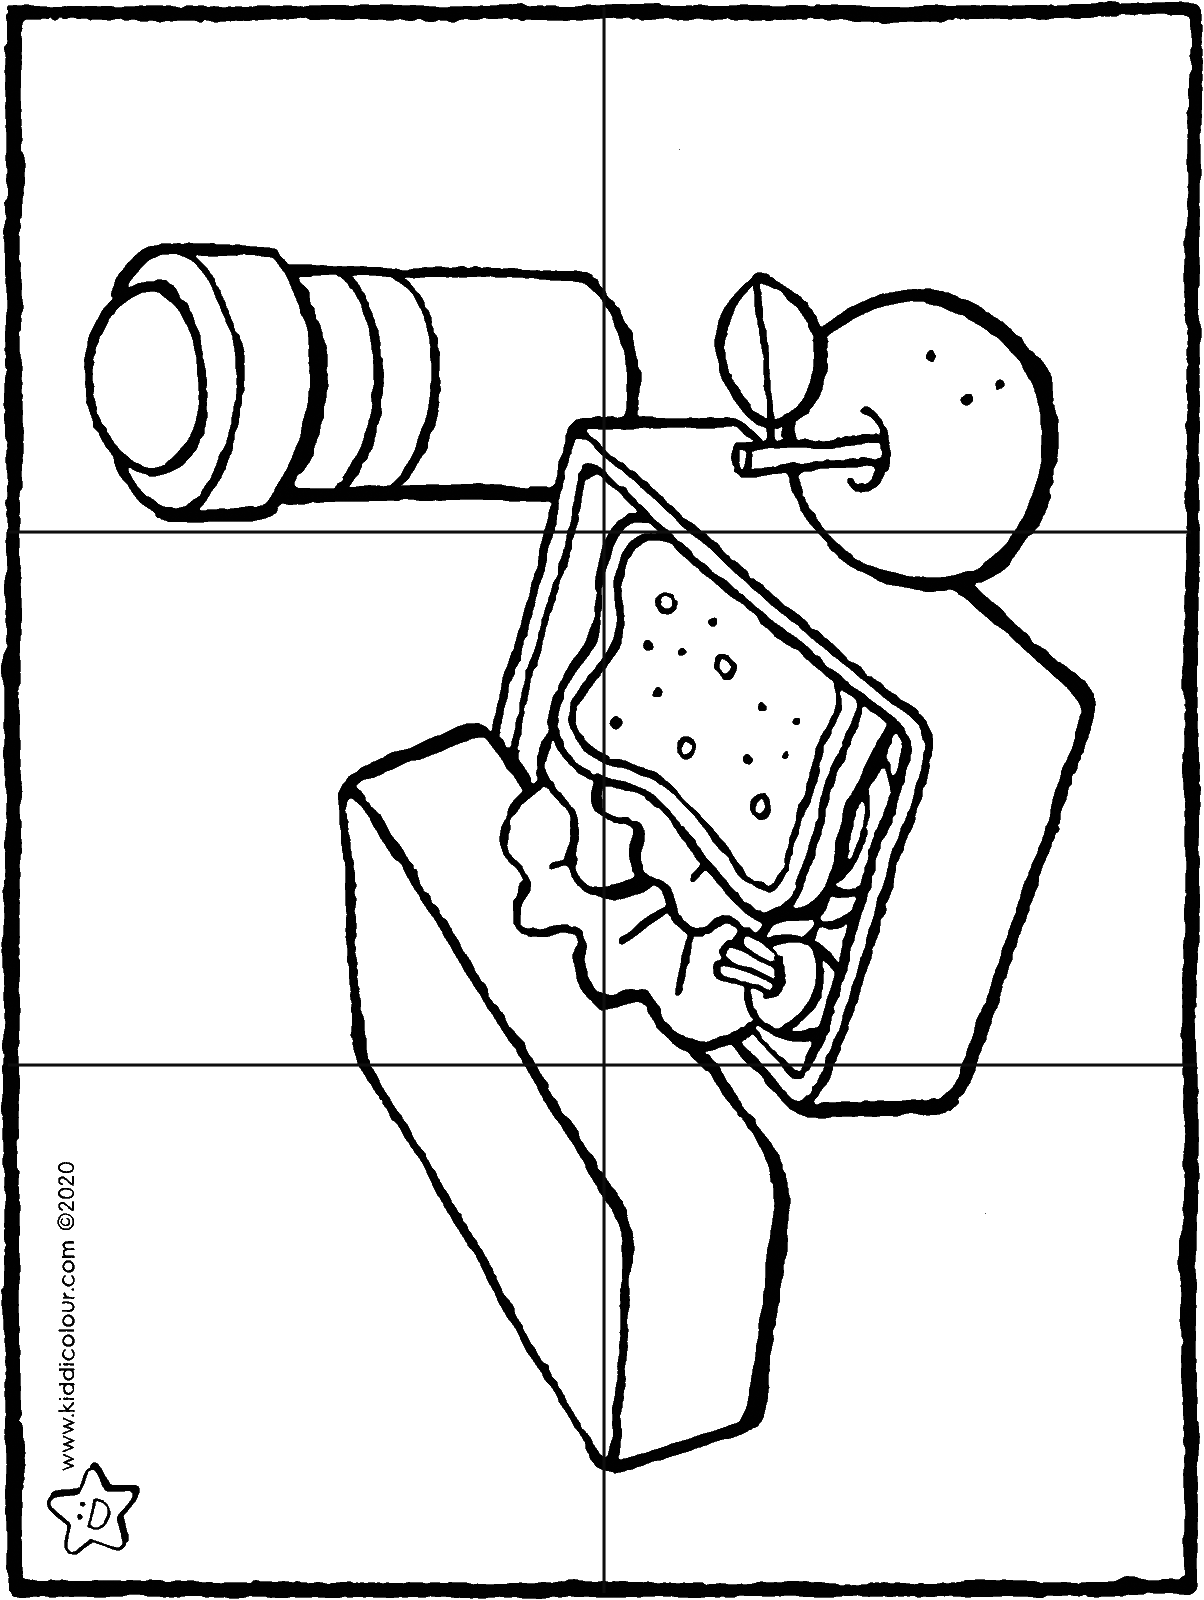 6-piece lunchbox puzzle colouring page drawing picture 01H